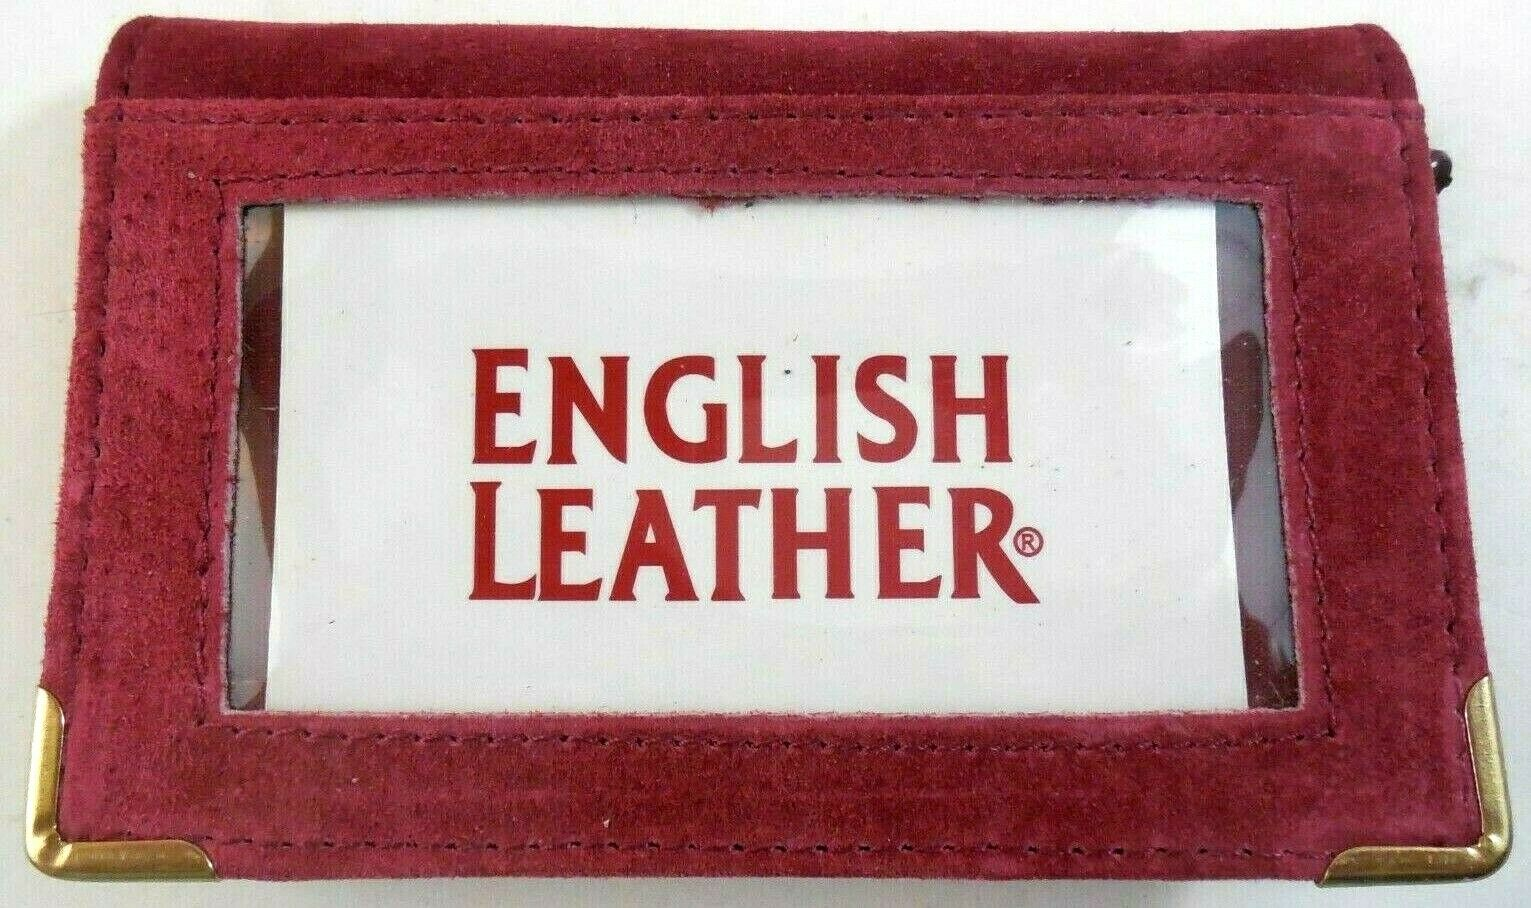 English Leather Burgundy Suede Wallet For Photos And Credit Cards Zippered